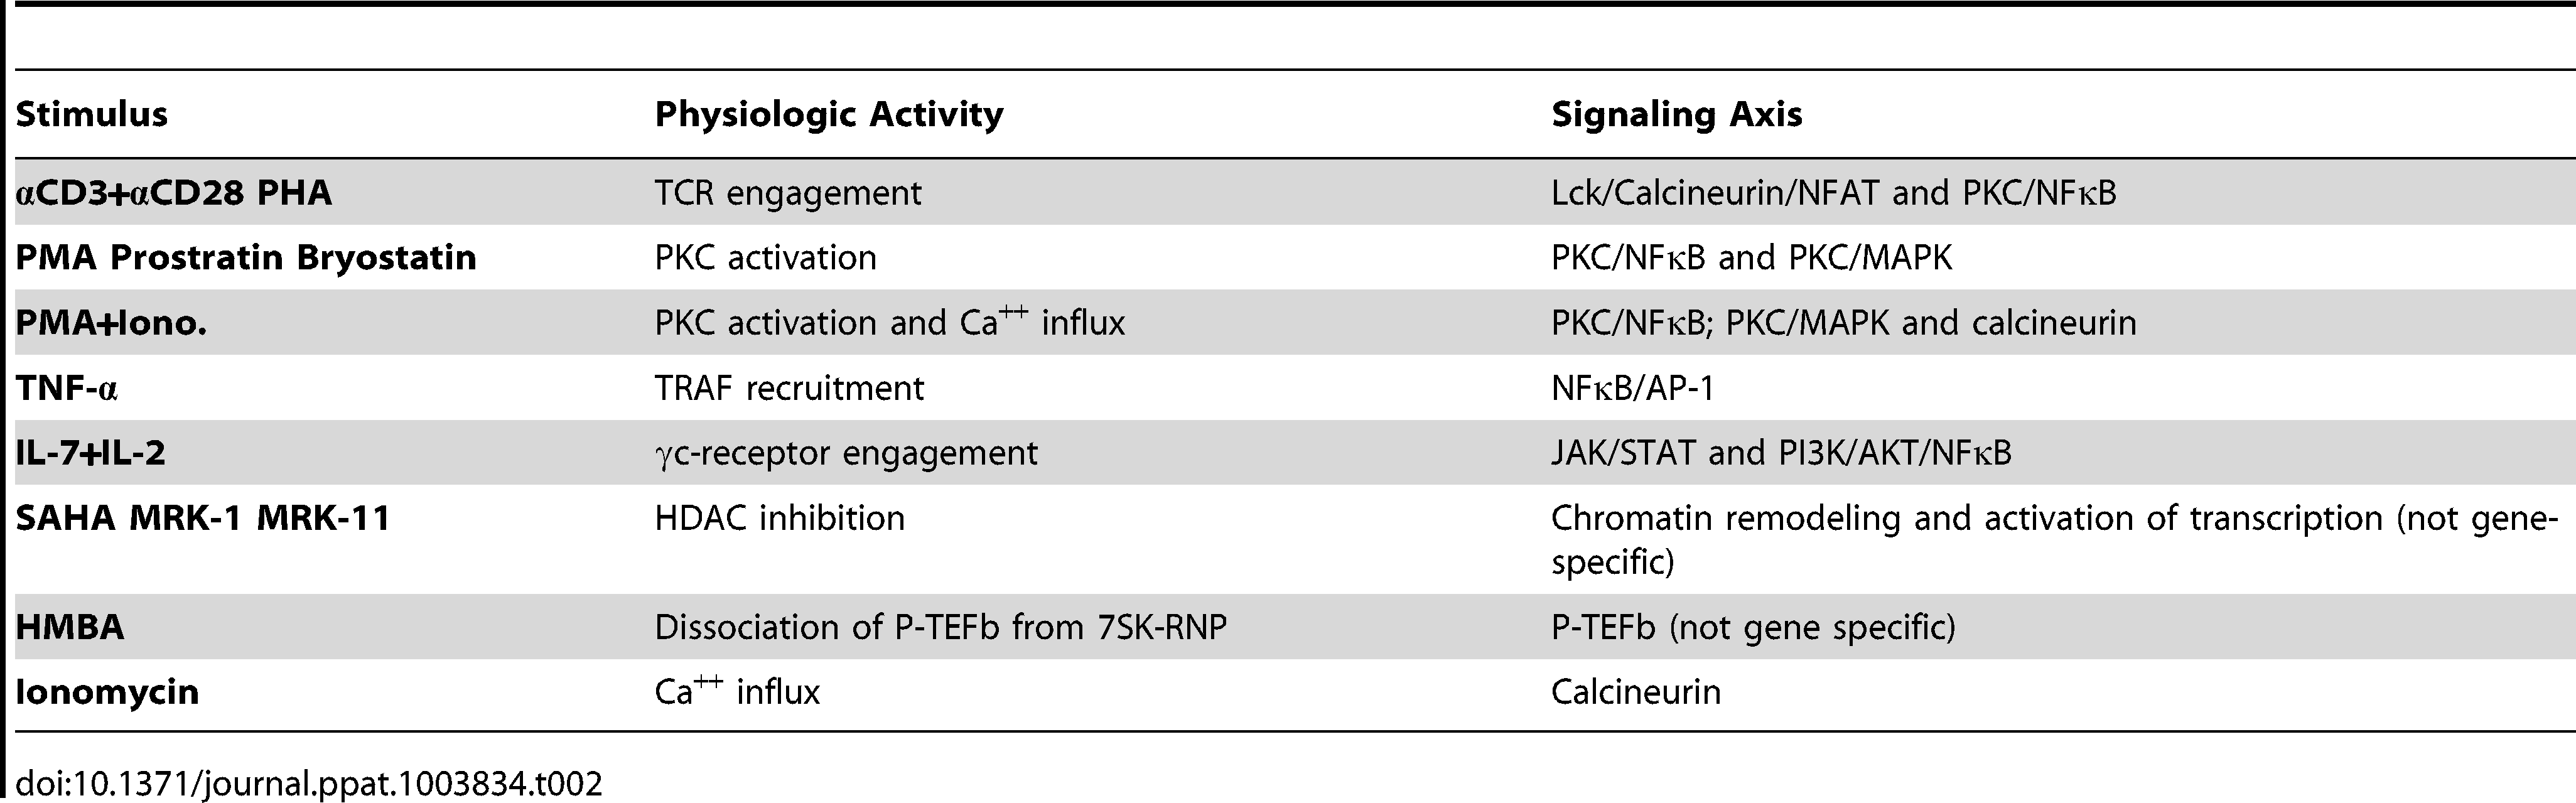 List of stimuli used in this study and their corresponding signaling pathways.